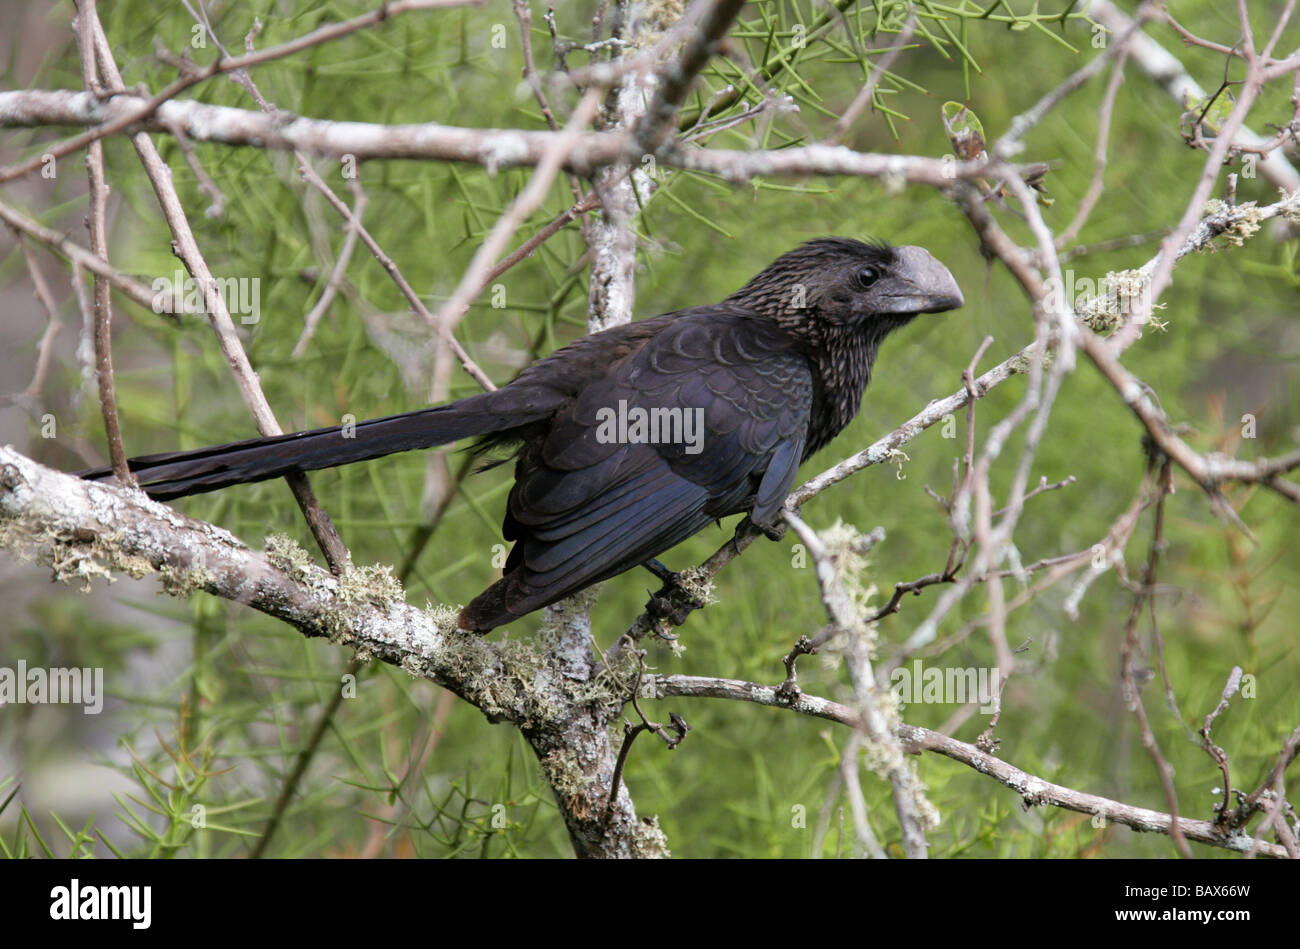 Smooth-billed Ani Bird, Crotophaga ani, Cuculidae, Santa Cruz Island (Indefatigable) Galapagos Islands, Ecuador, Stock Photo